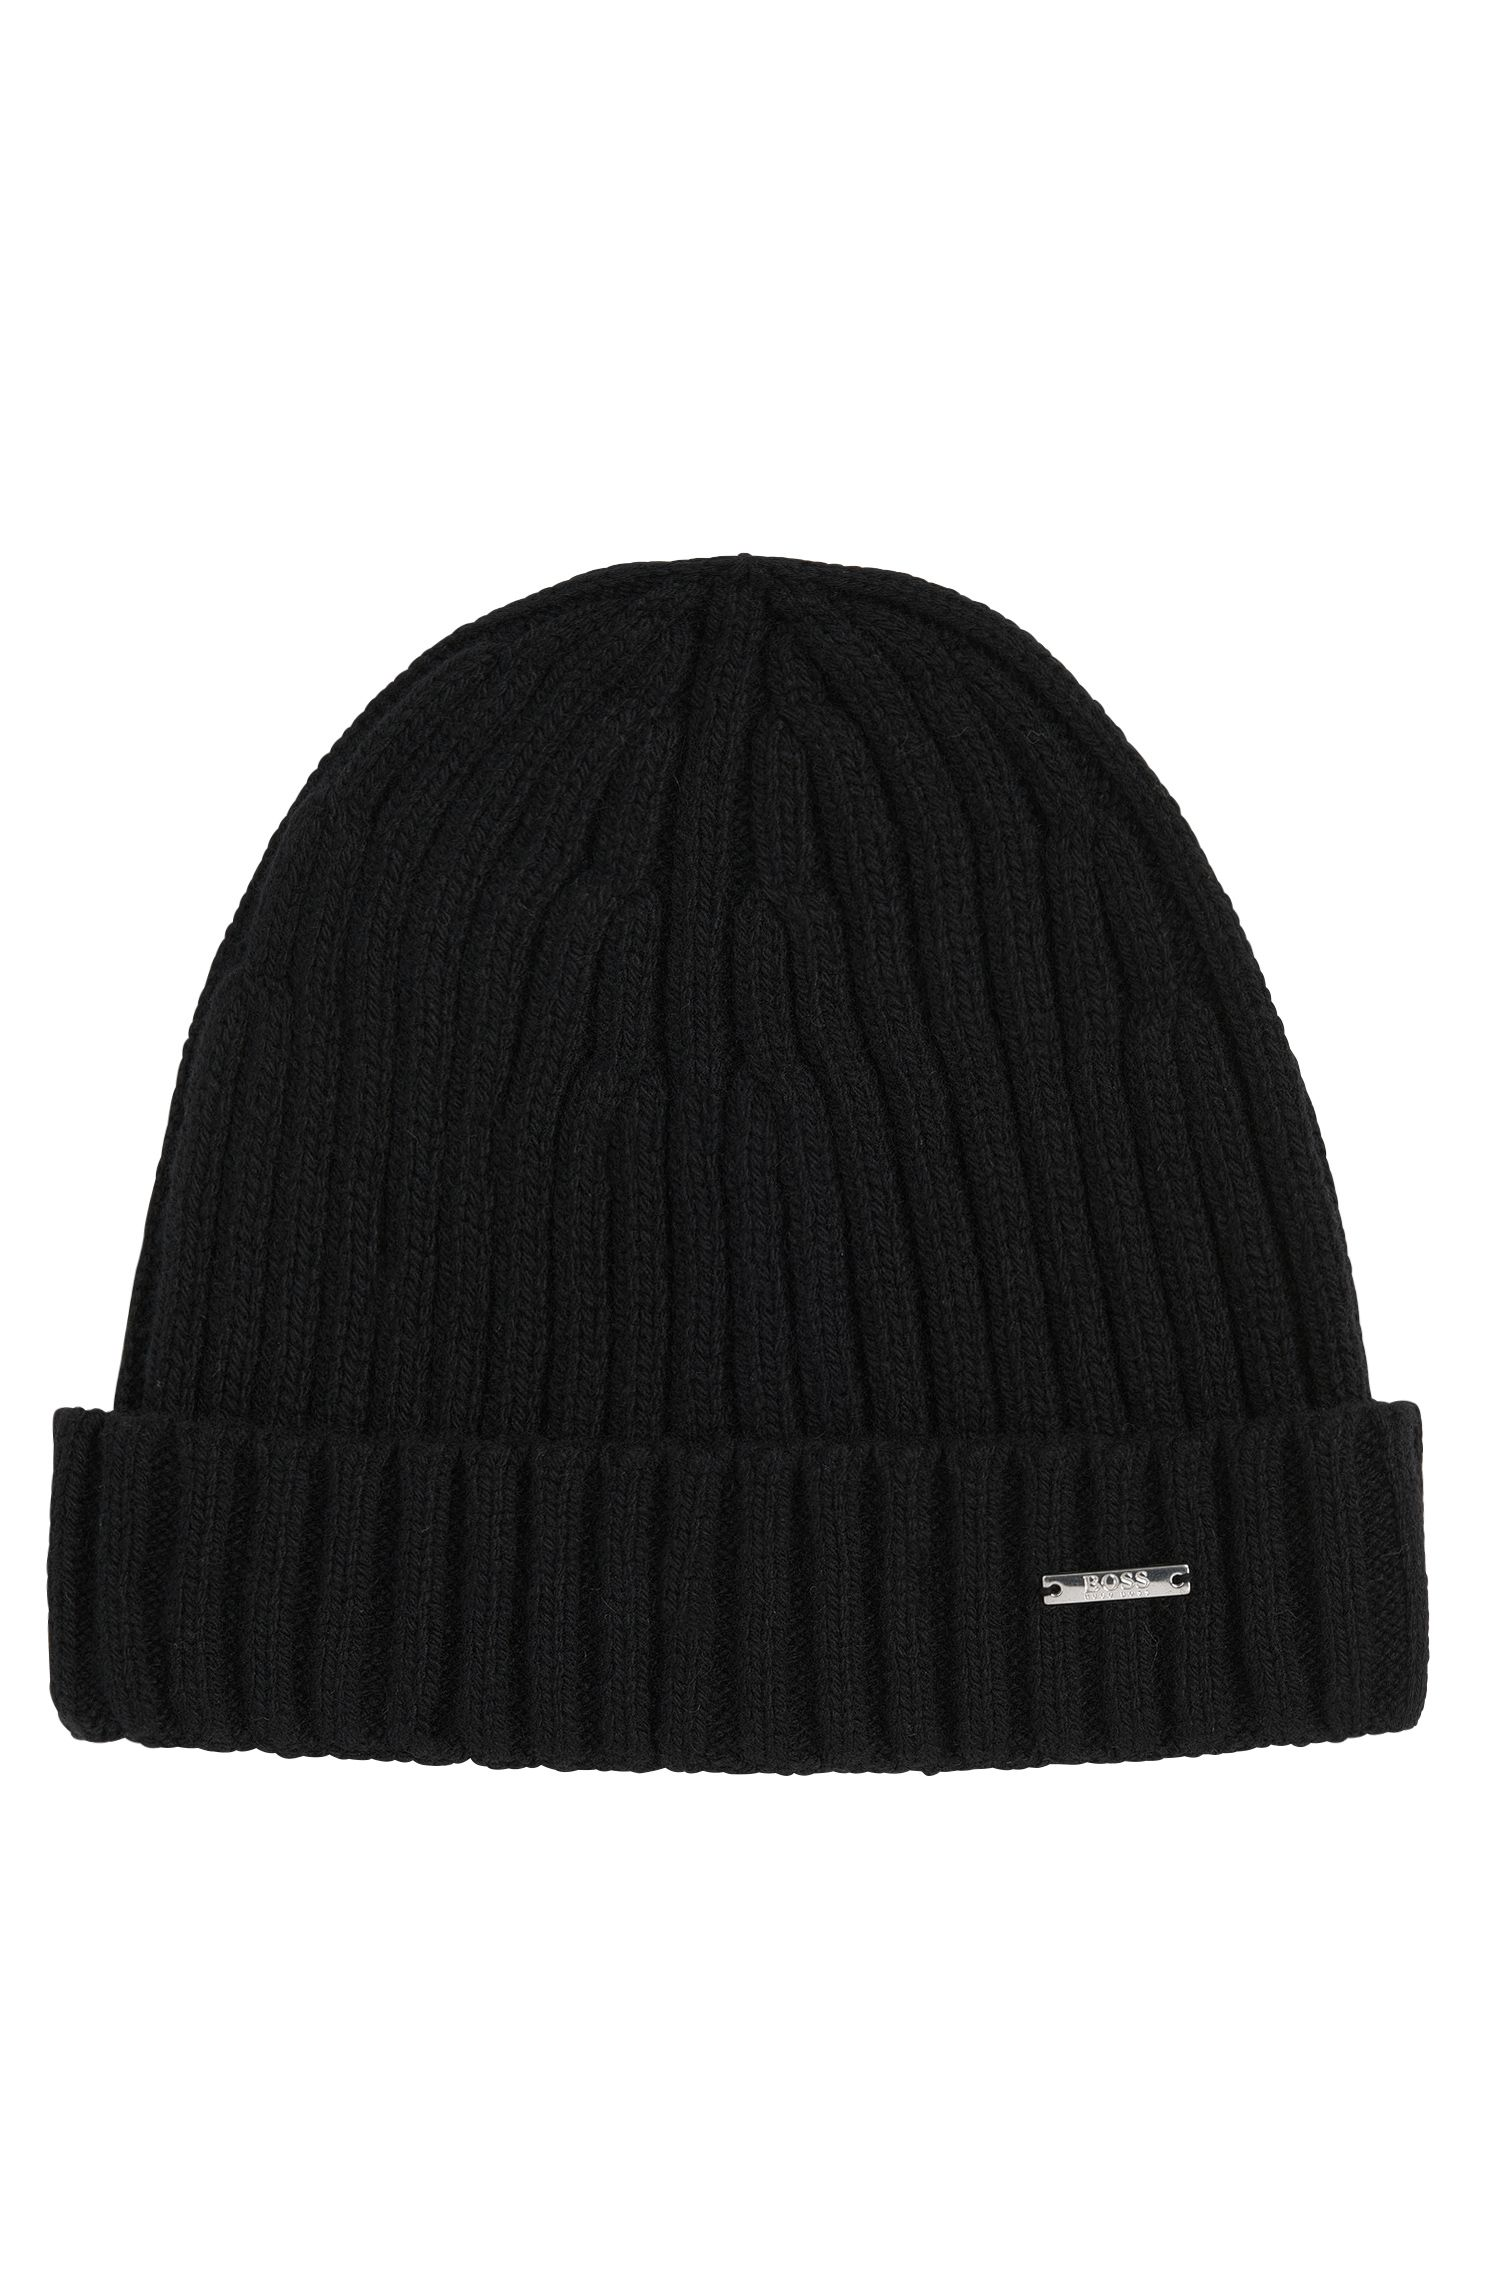 'T-Benzo' | Cashmere Wool Ribbed Beanie Cap